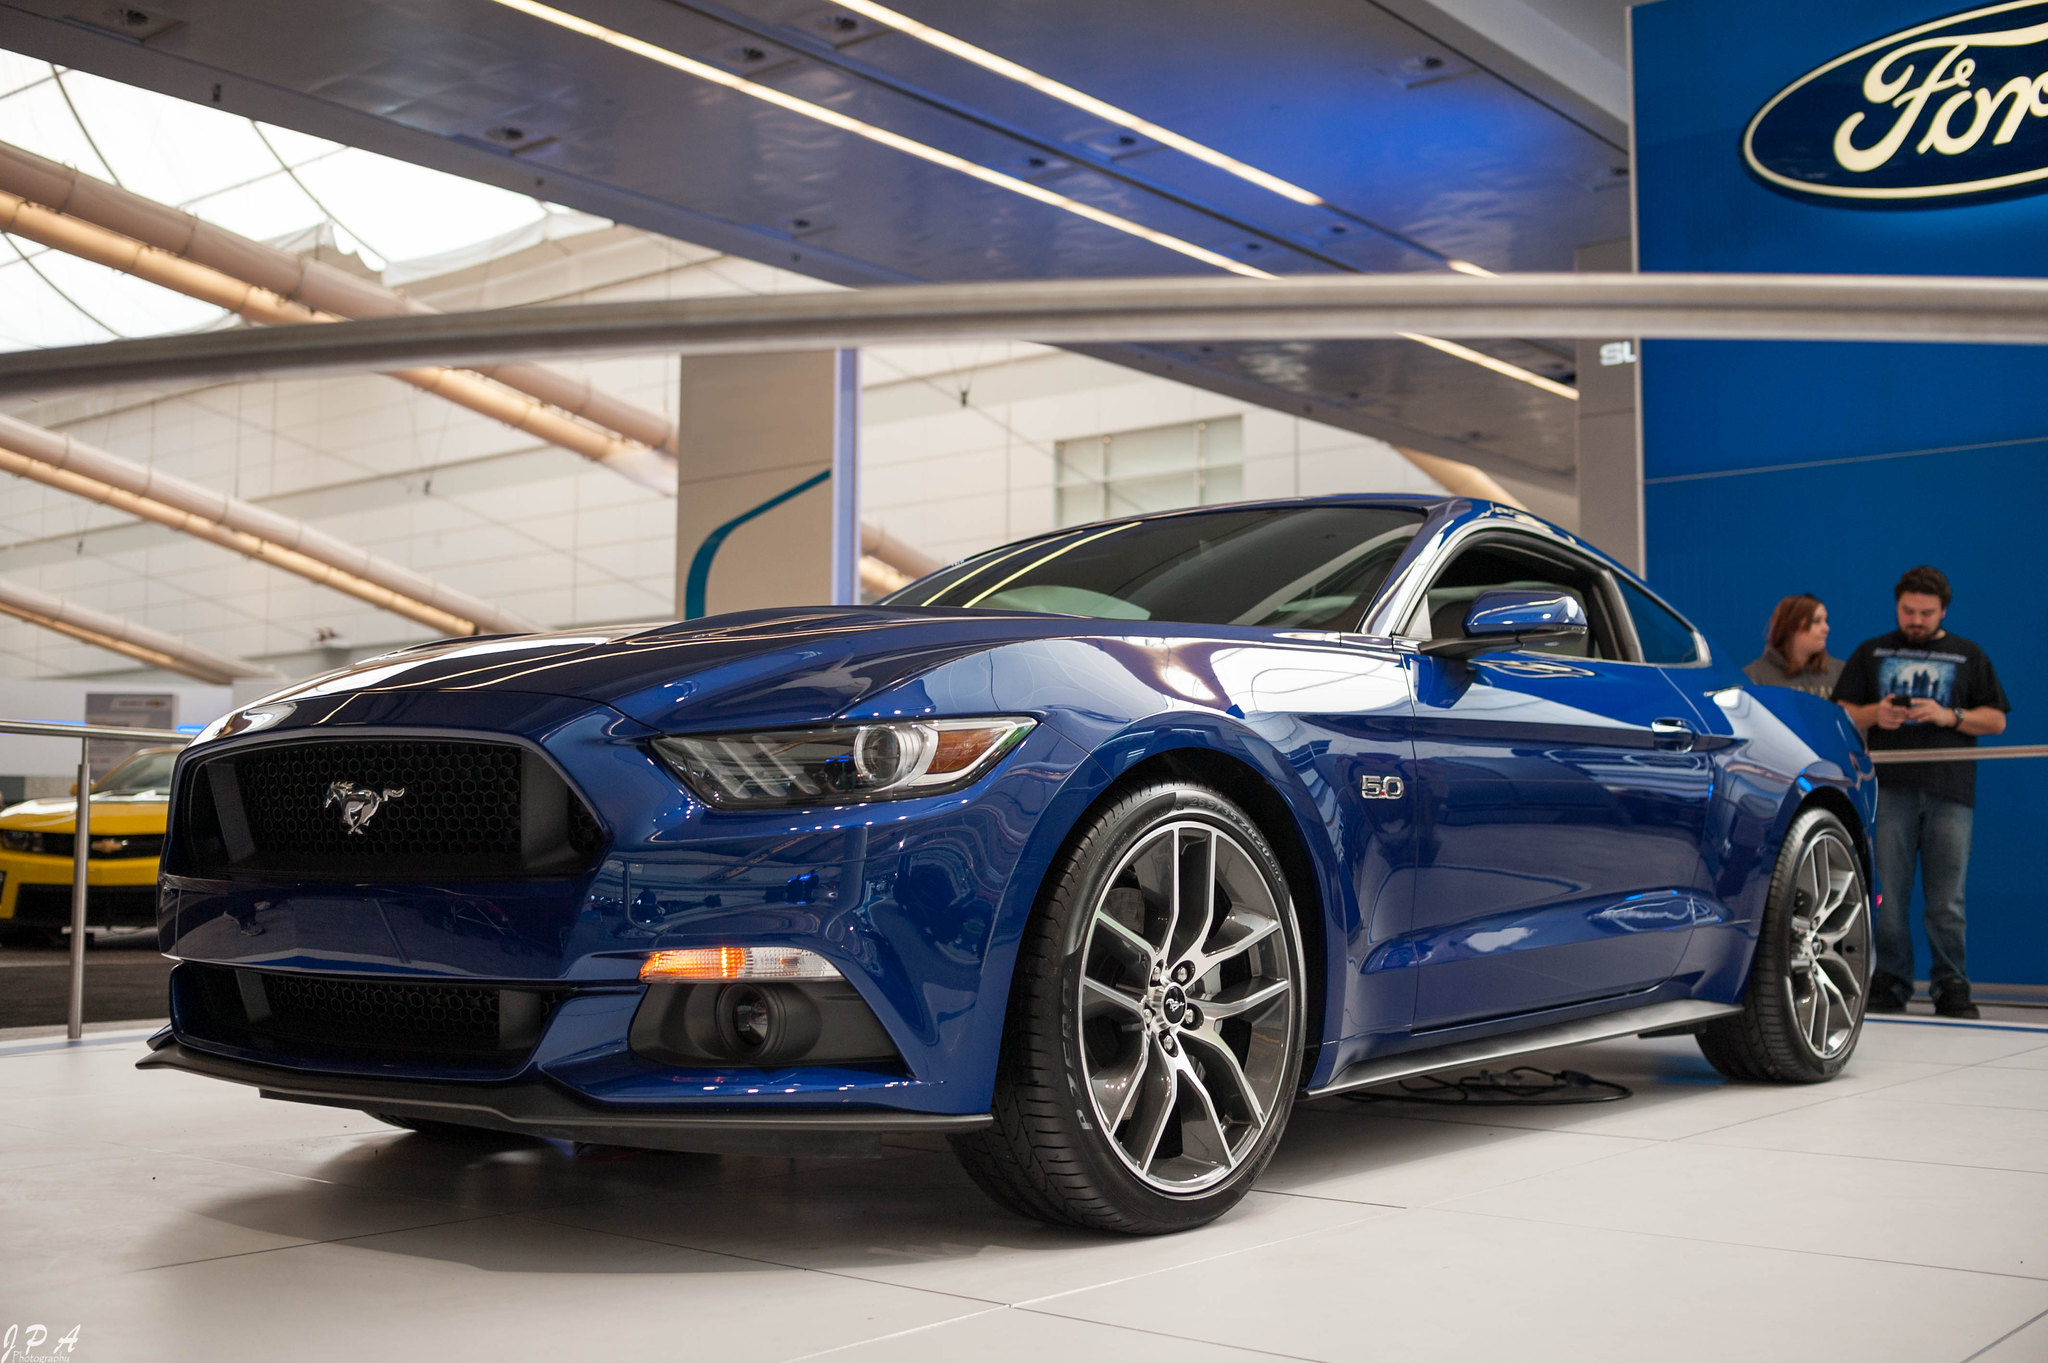 2015 vs 2014 mustang vehicle buying engine price ford and lincoln car forums city. Black Bedroom Furniture Sets. Home Design Ideas